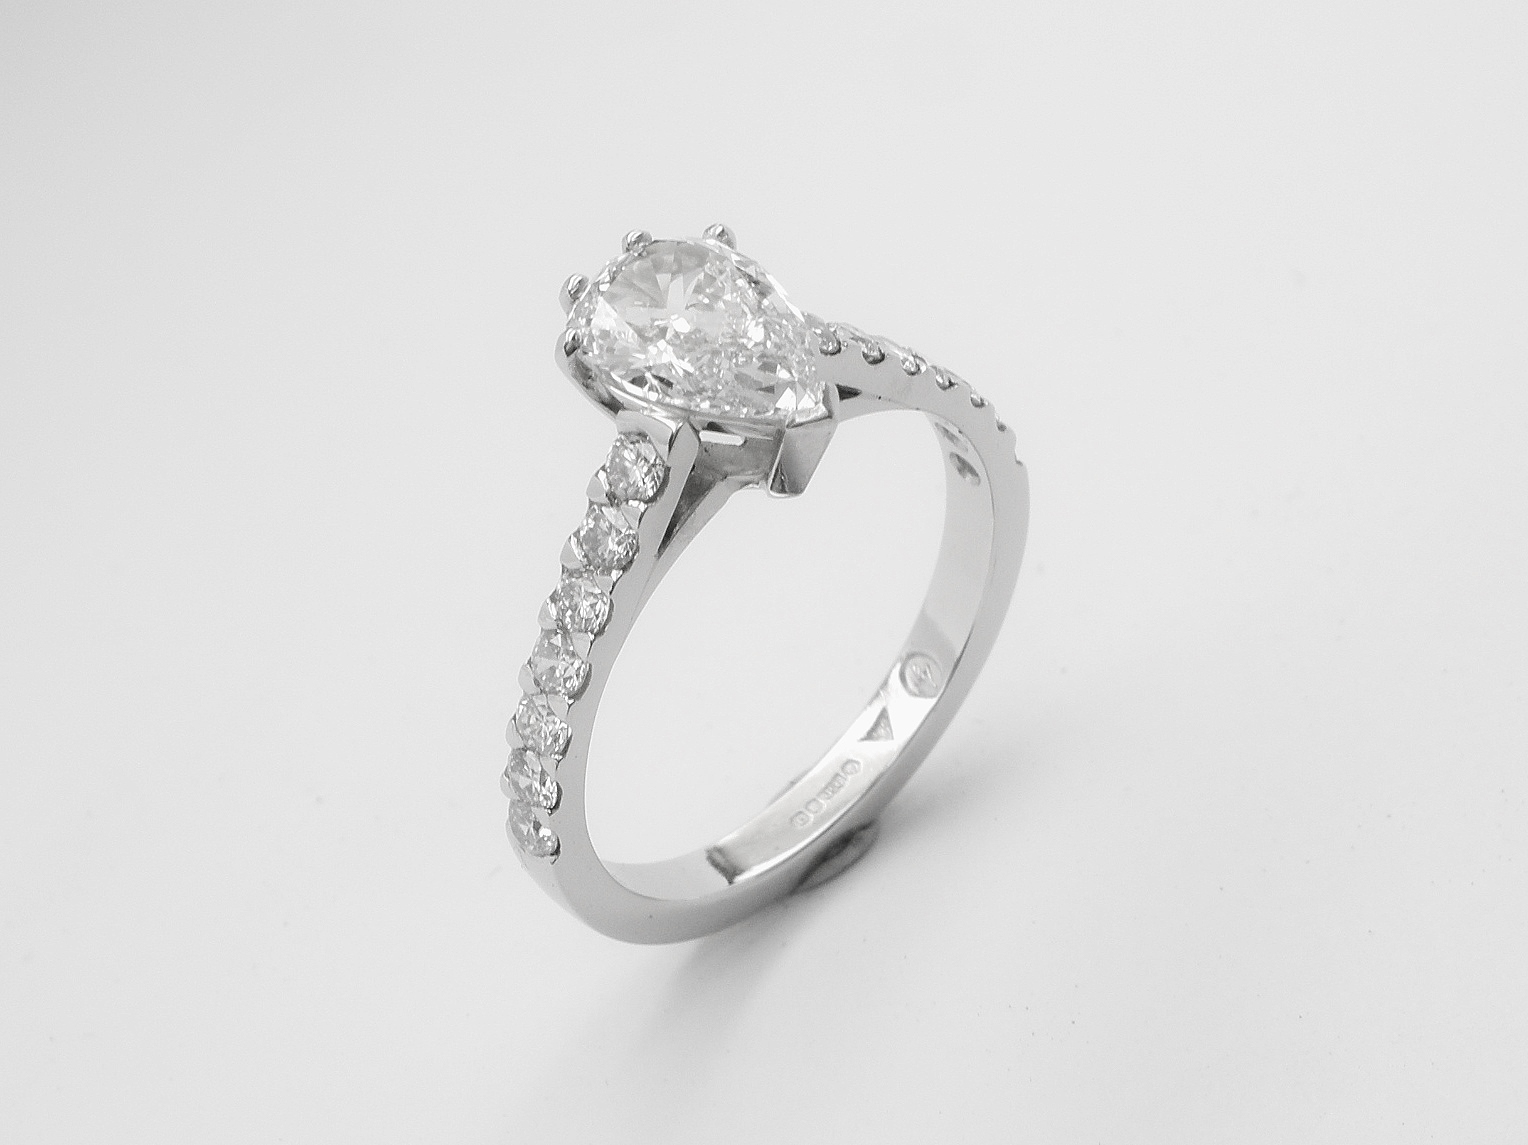 A single pear shaped diamond ring mounted in platinum with round brilliant cut diamonds cut down set in the shoulders.